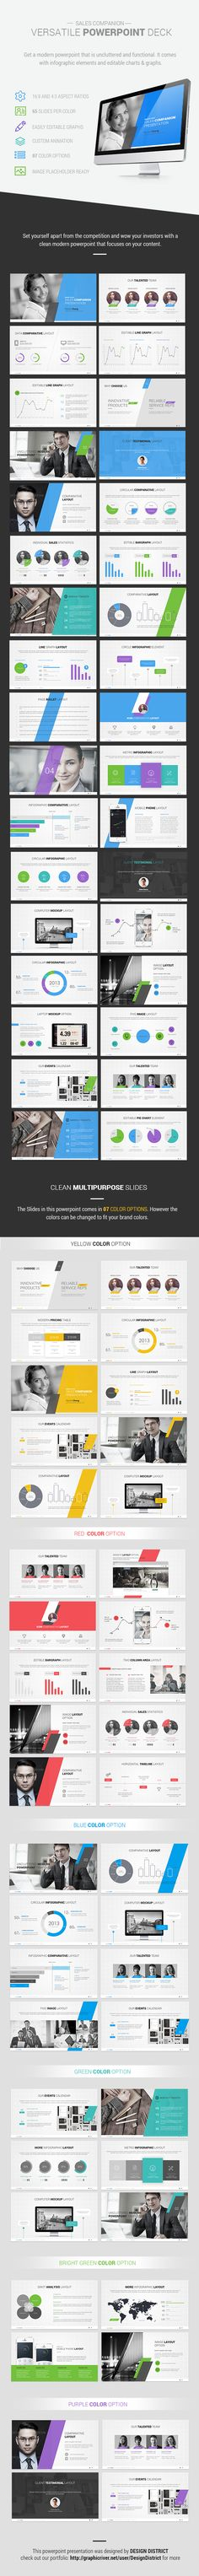 Ideo Powerpoint Presentation Template (Powerpoint Templates